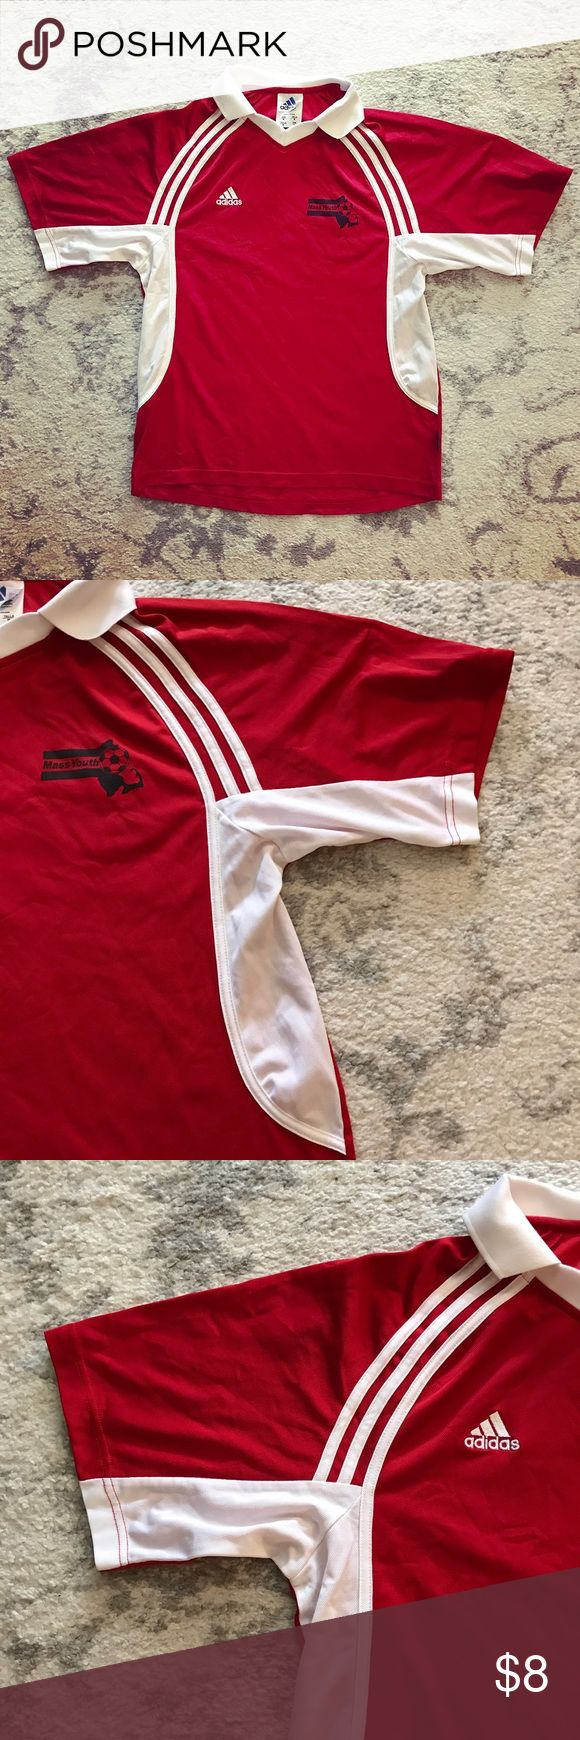 Red & white Adidas Mass Youth Soccer jersey Red and white Adidas ClimaLite collared athletic sports jersey. The shirt is an Adult size M (unisex). The jersey is red with white sides along the torso and three white stripes on each side of the chest coming from the collar. The Adidas logo is stitched on the jersey in white on the right chest, while the left chest has the logo for the Massachusetts Youth Soccer Association in black. The number 24 is on black on the back. In excellent condition…